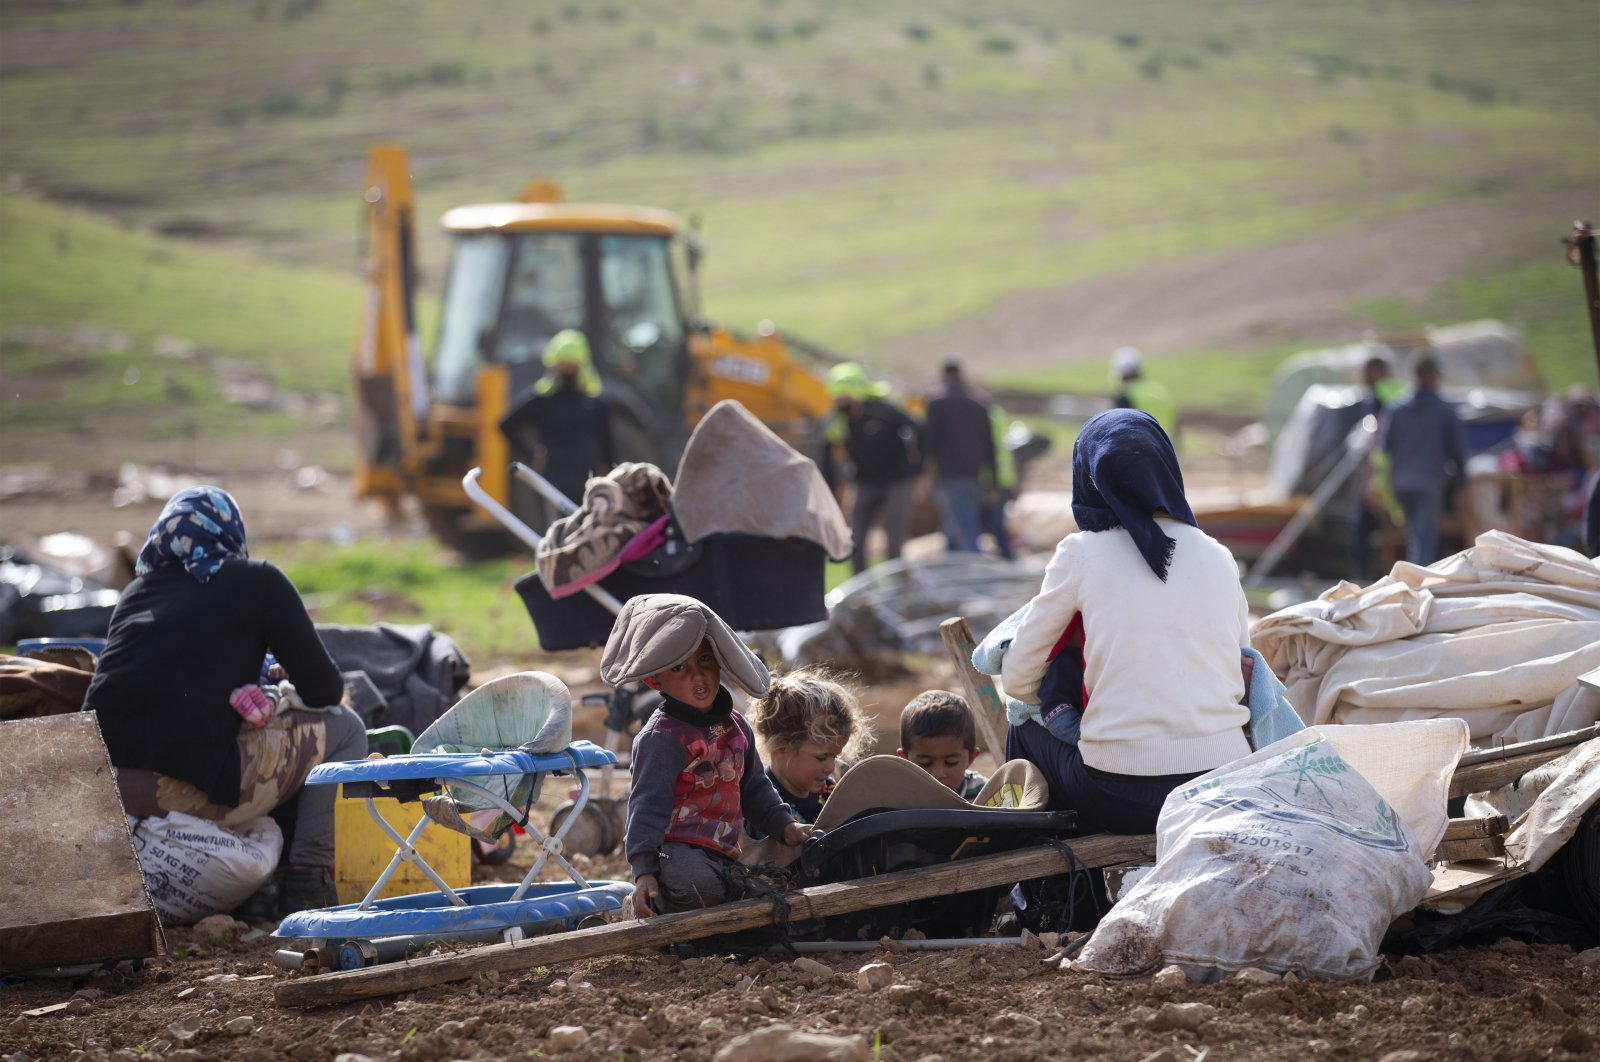 Palestinians watch Israeli troops demolish tents and other structures at the Khirbet Humsu hamlet in the Jordan Valley in the occupied West Bank, Palestine, Feb. 3, 2020. (AP Photo)